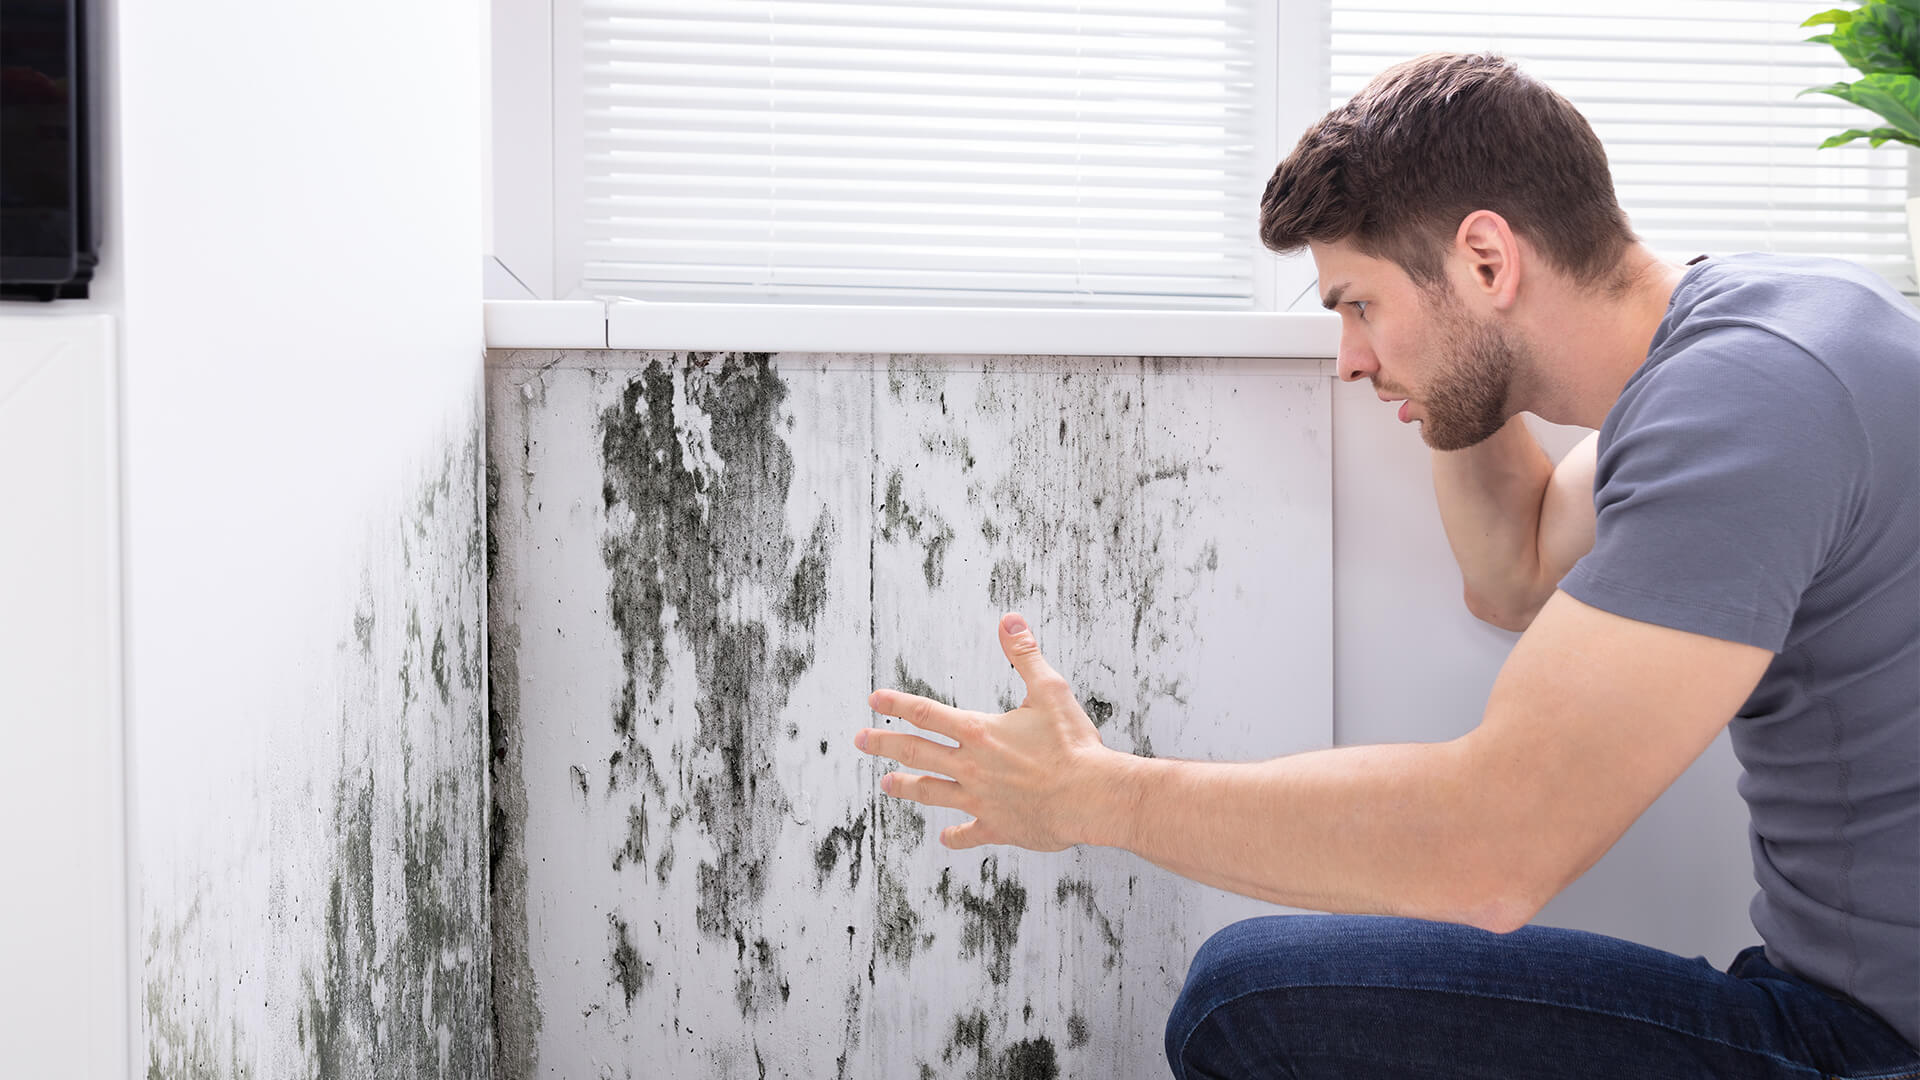 Man looking at mould on the wall. He is on the phone.